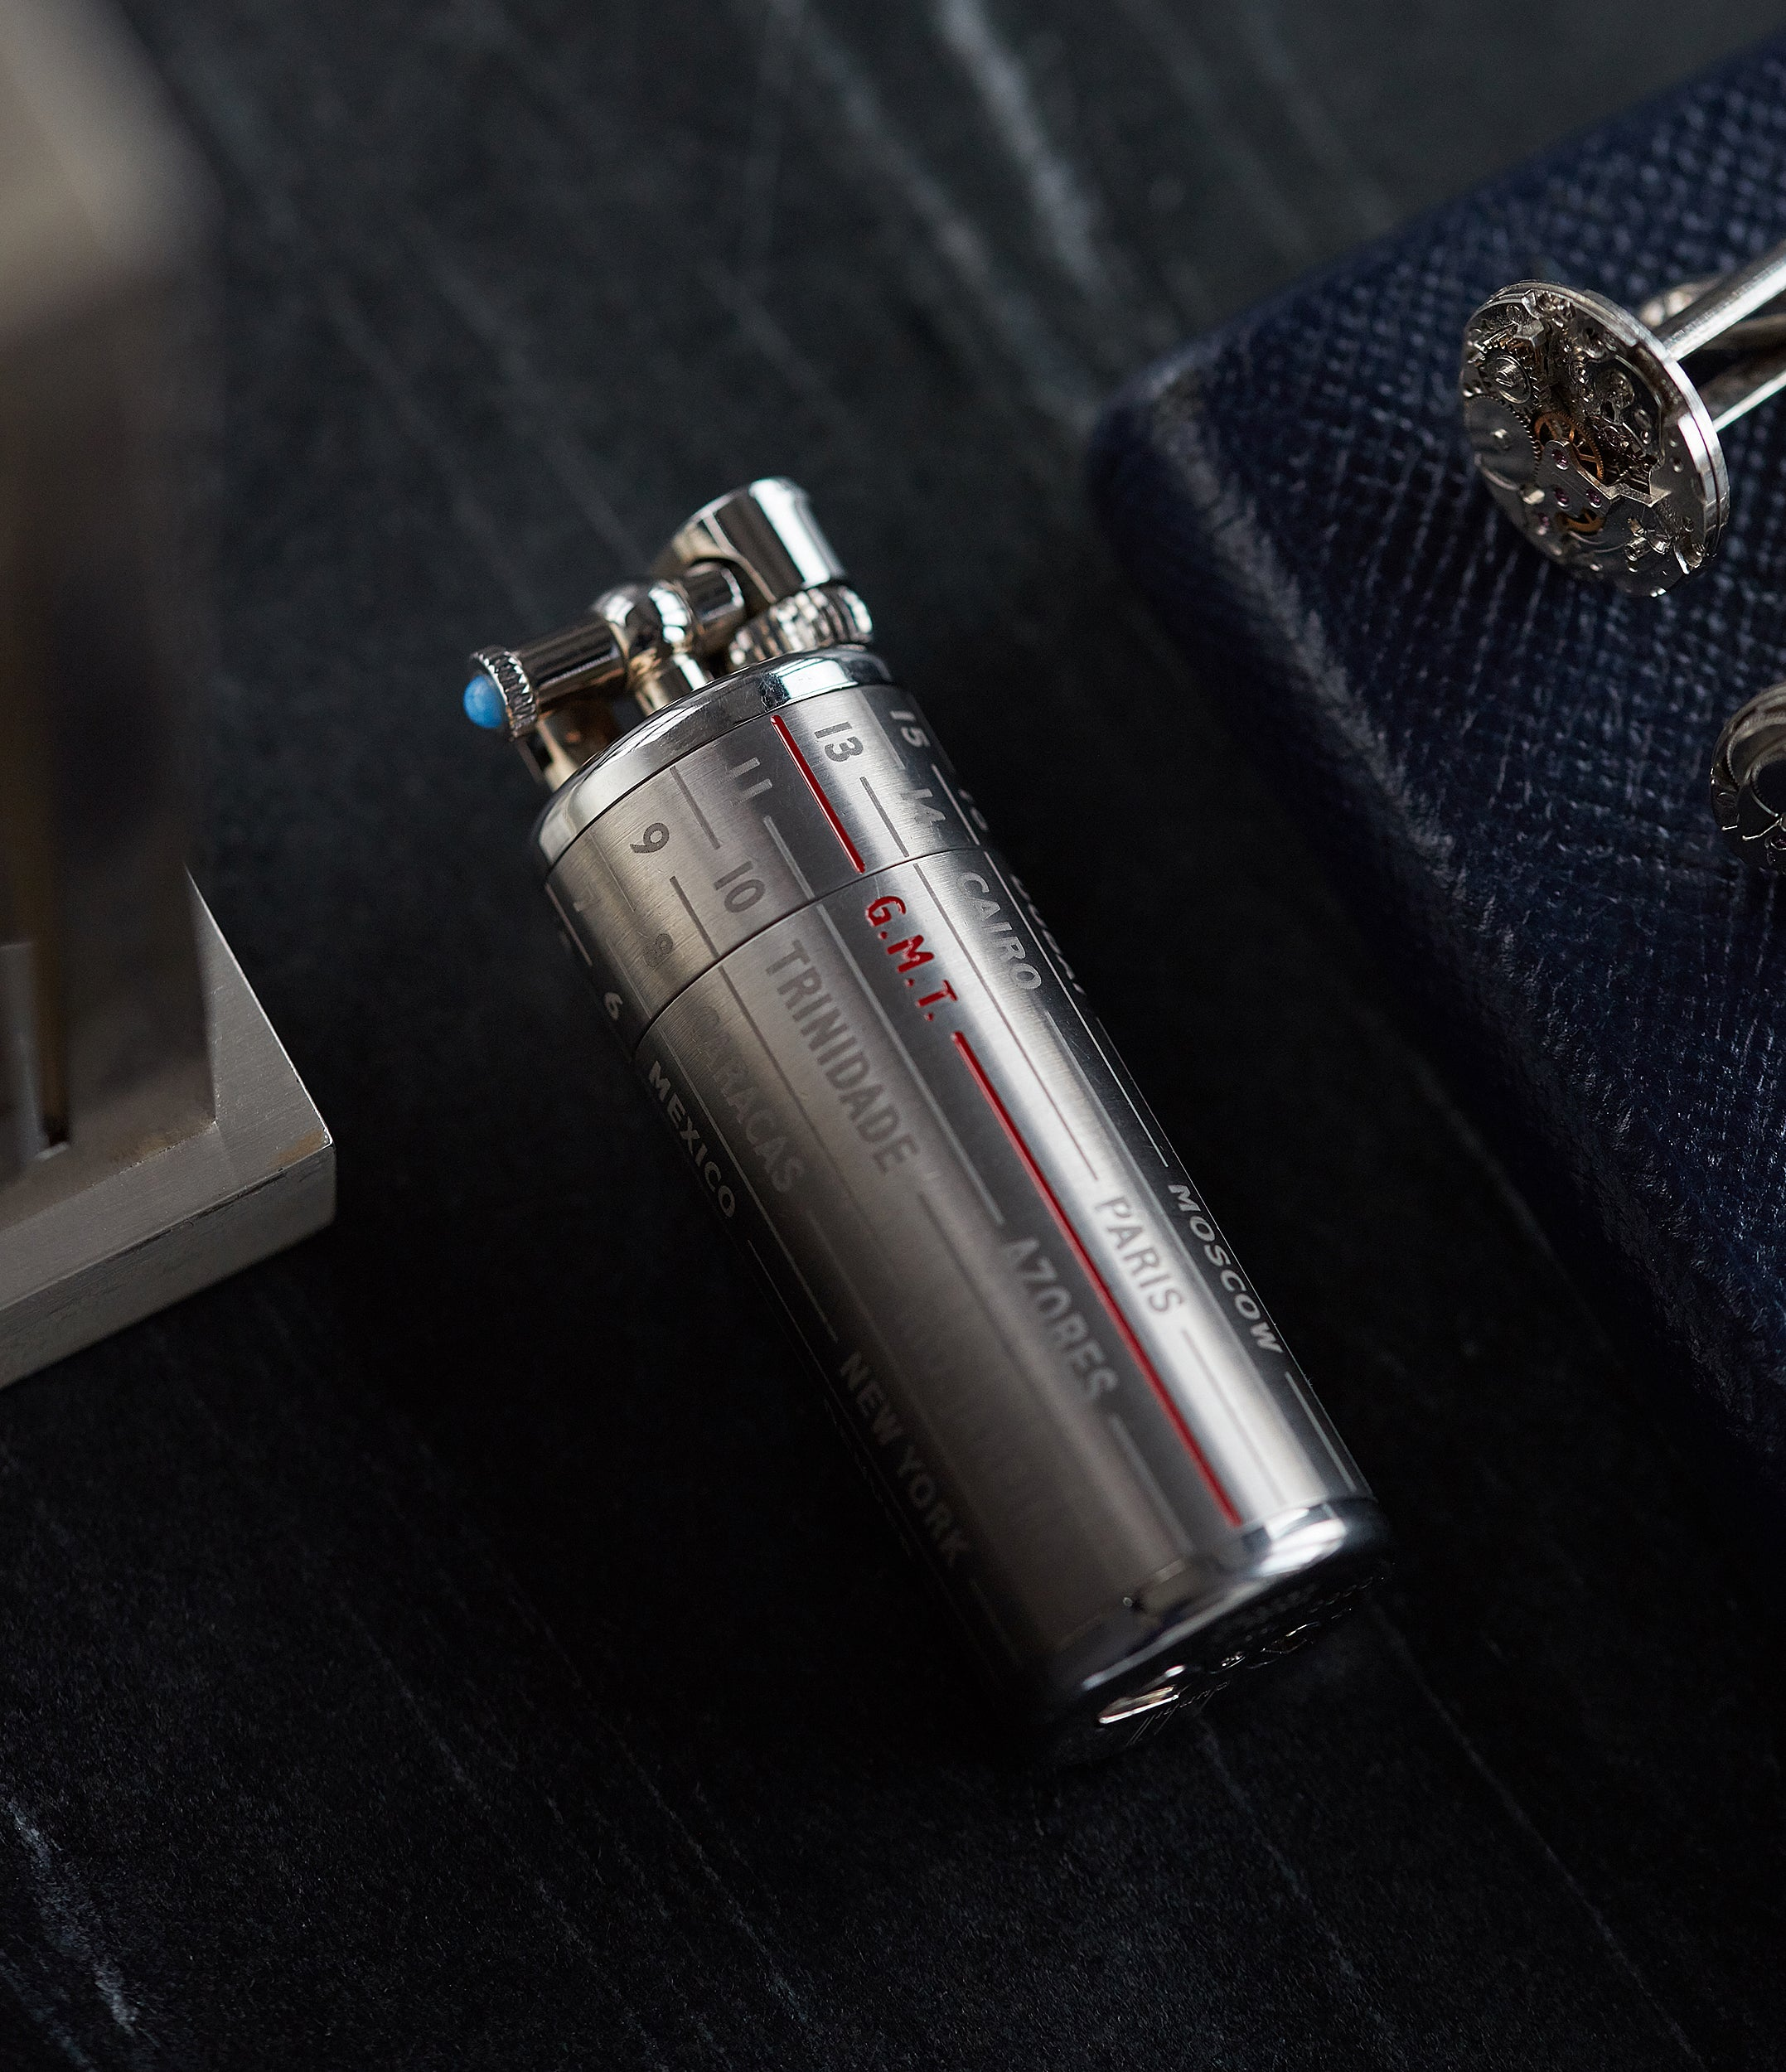 Prototype | GMT Travel-Time | Lighter